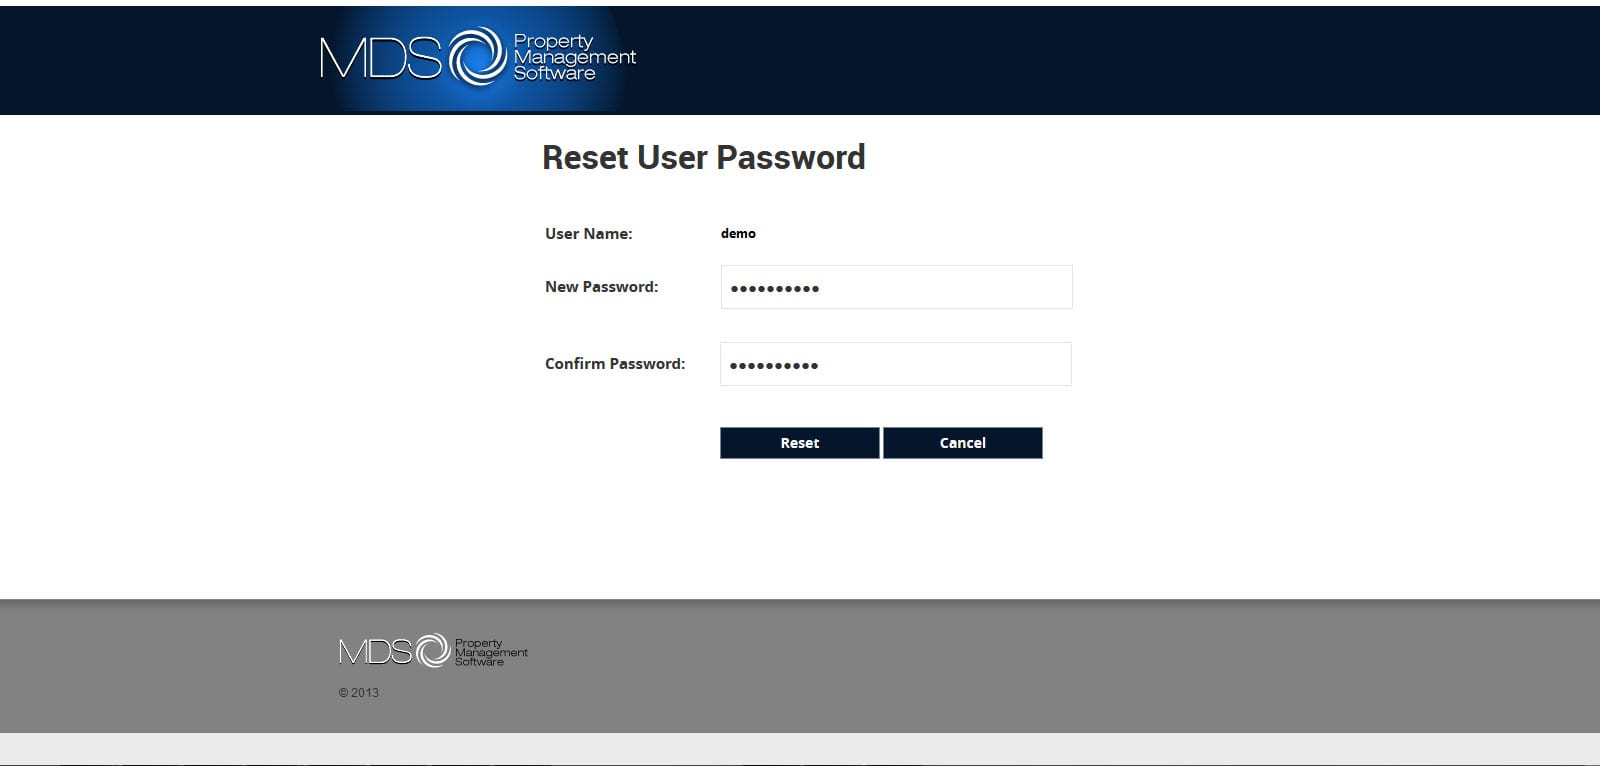 MDS - MS RDWEB 2012 R2 Reset User Password